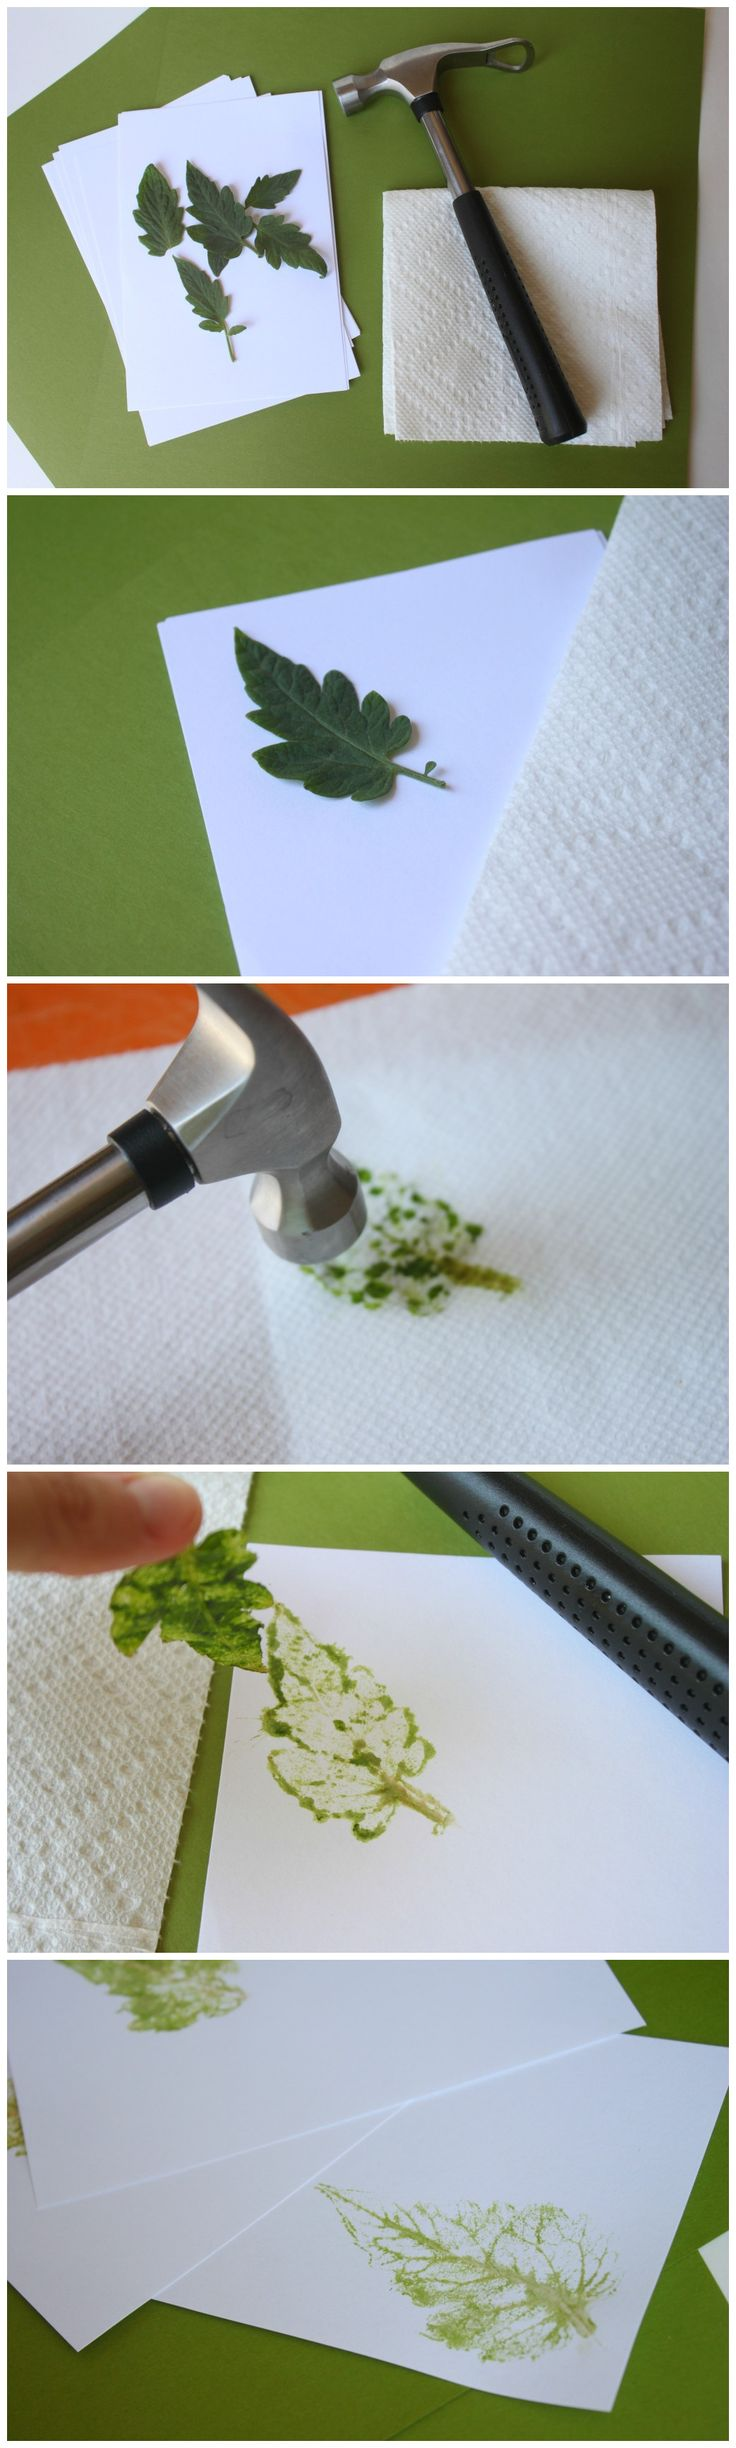 Make cards with leaf prints! Genius